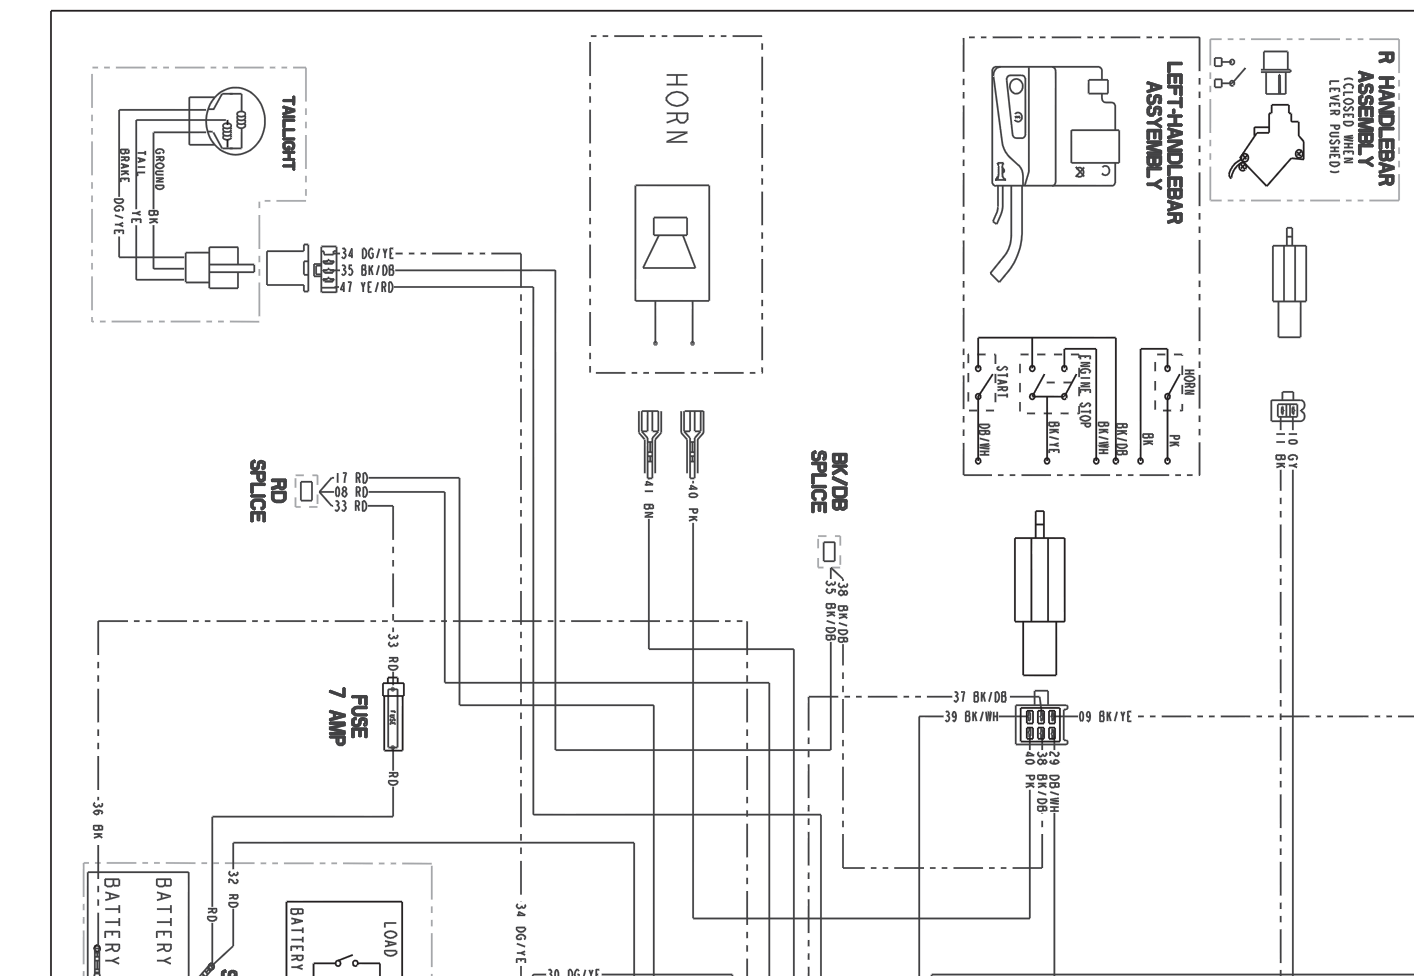 polaris sportsman 500 wiring diagram thermostat color codes 800 get free image